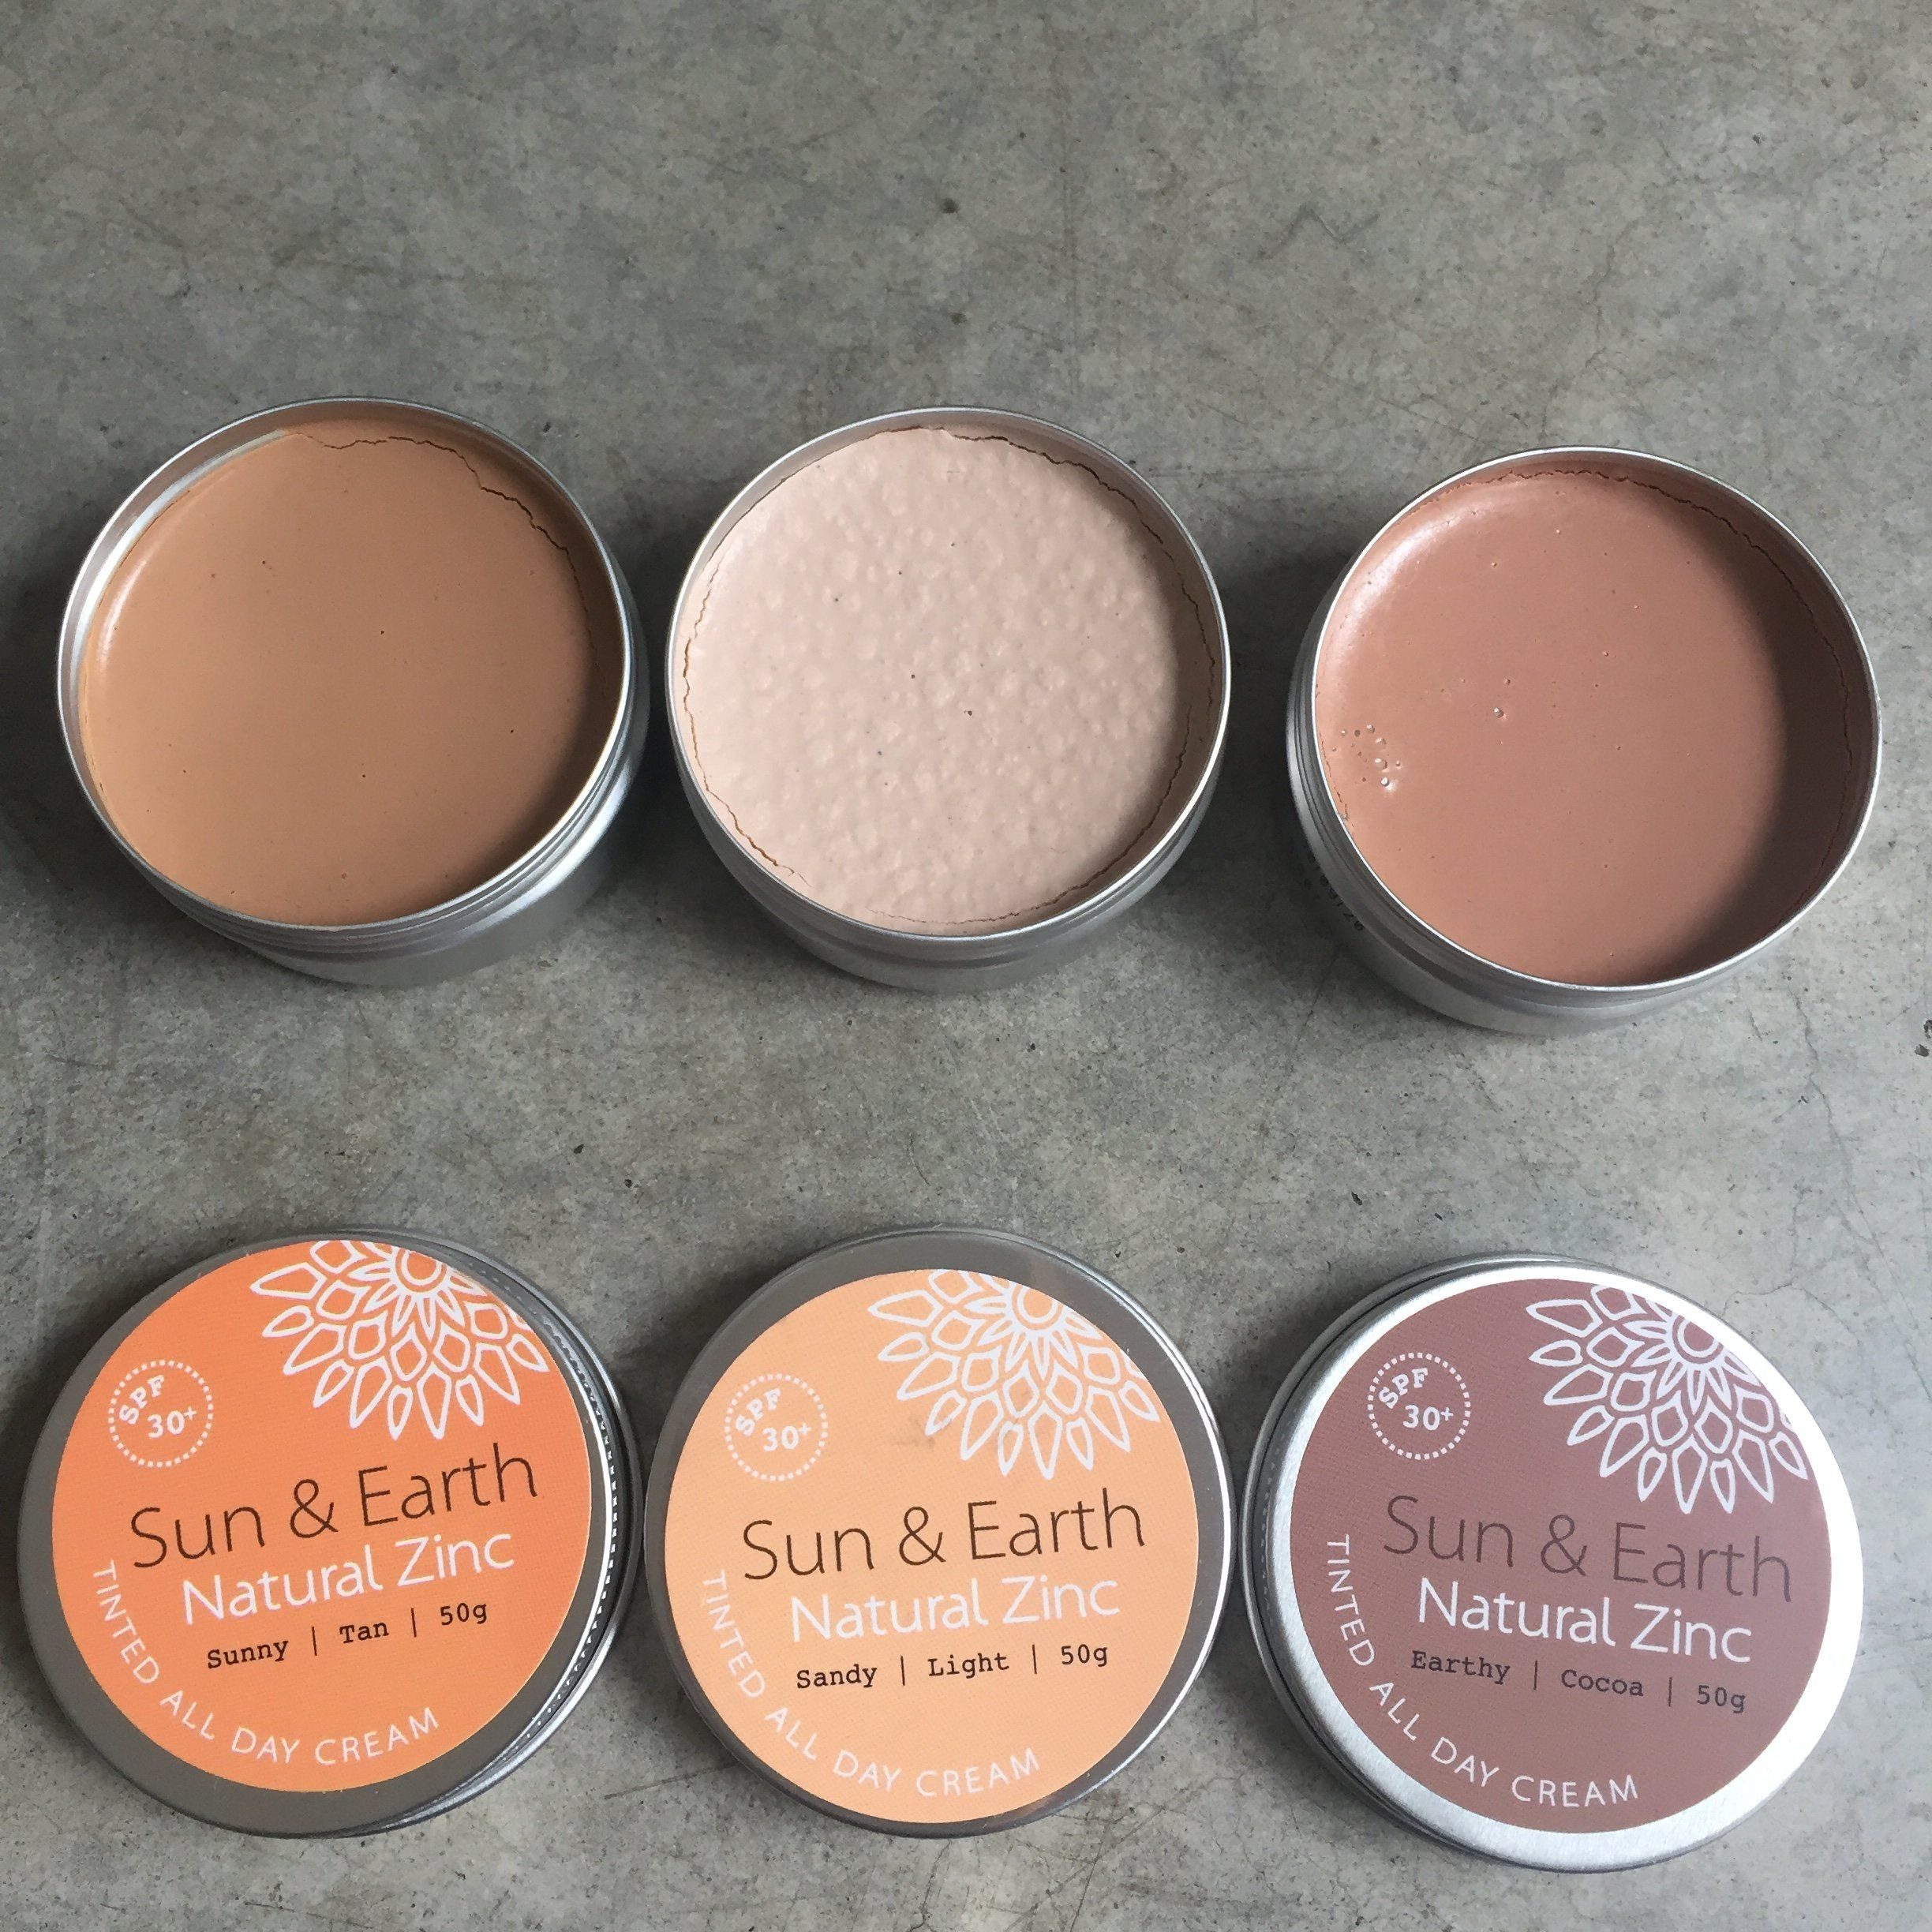 Natural Zinc by Sun & Earth SPF 30 Natural Zinc made in